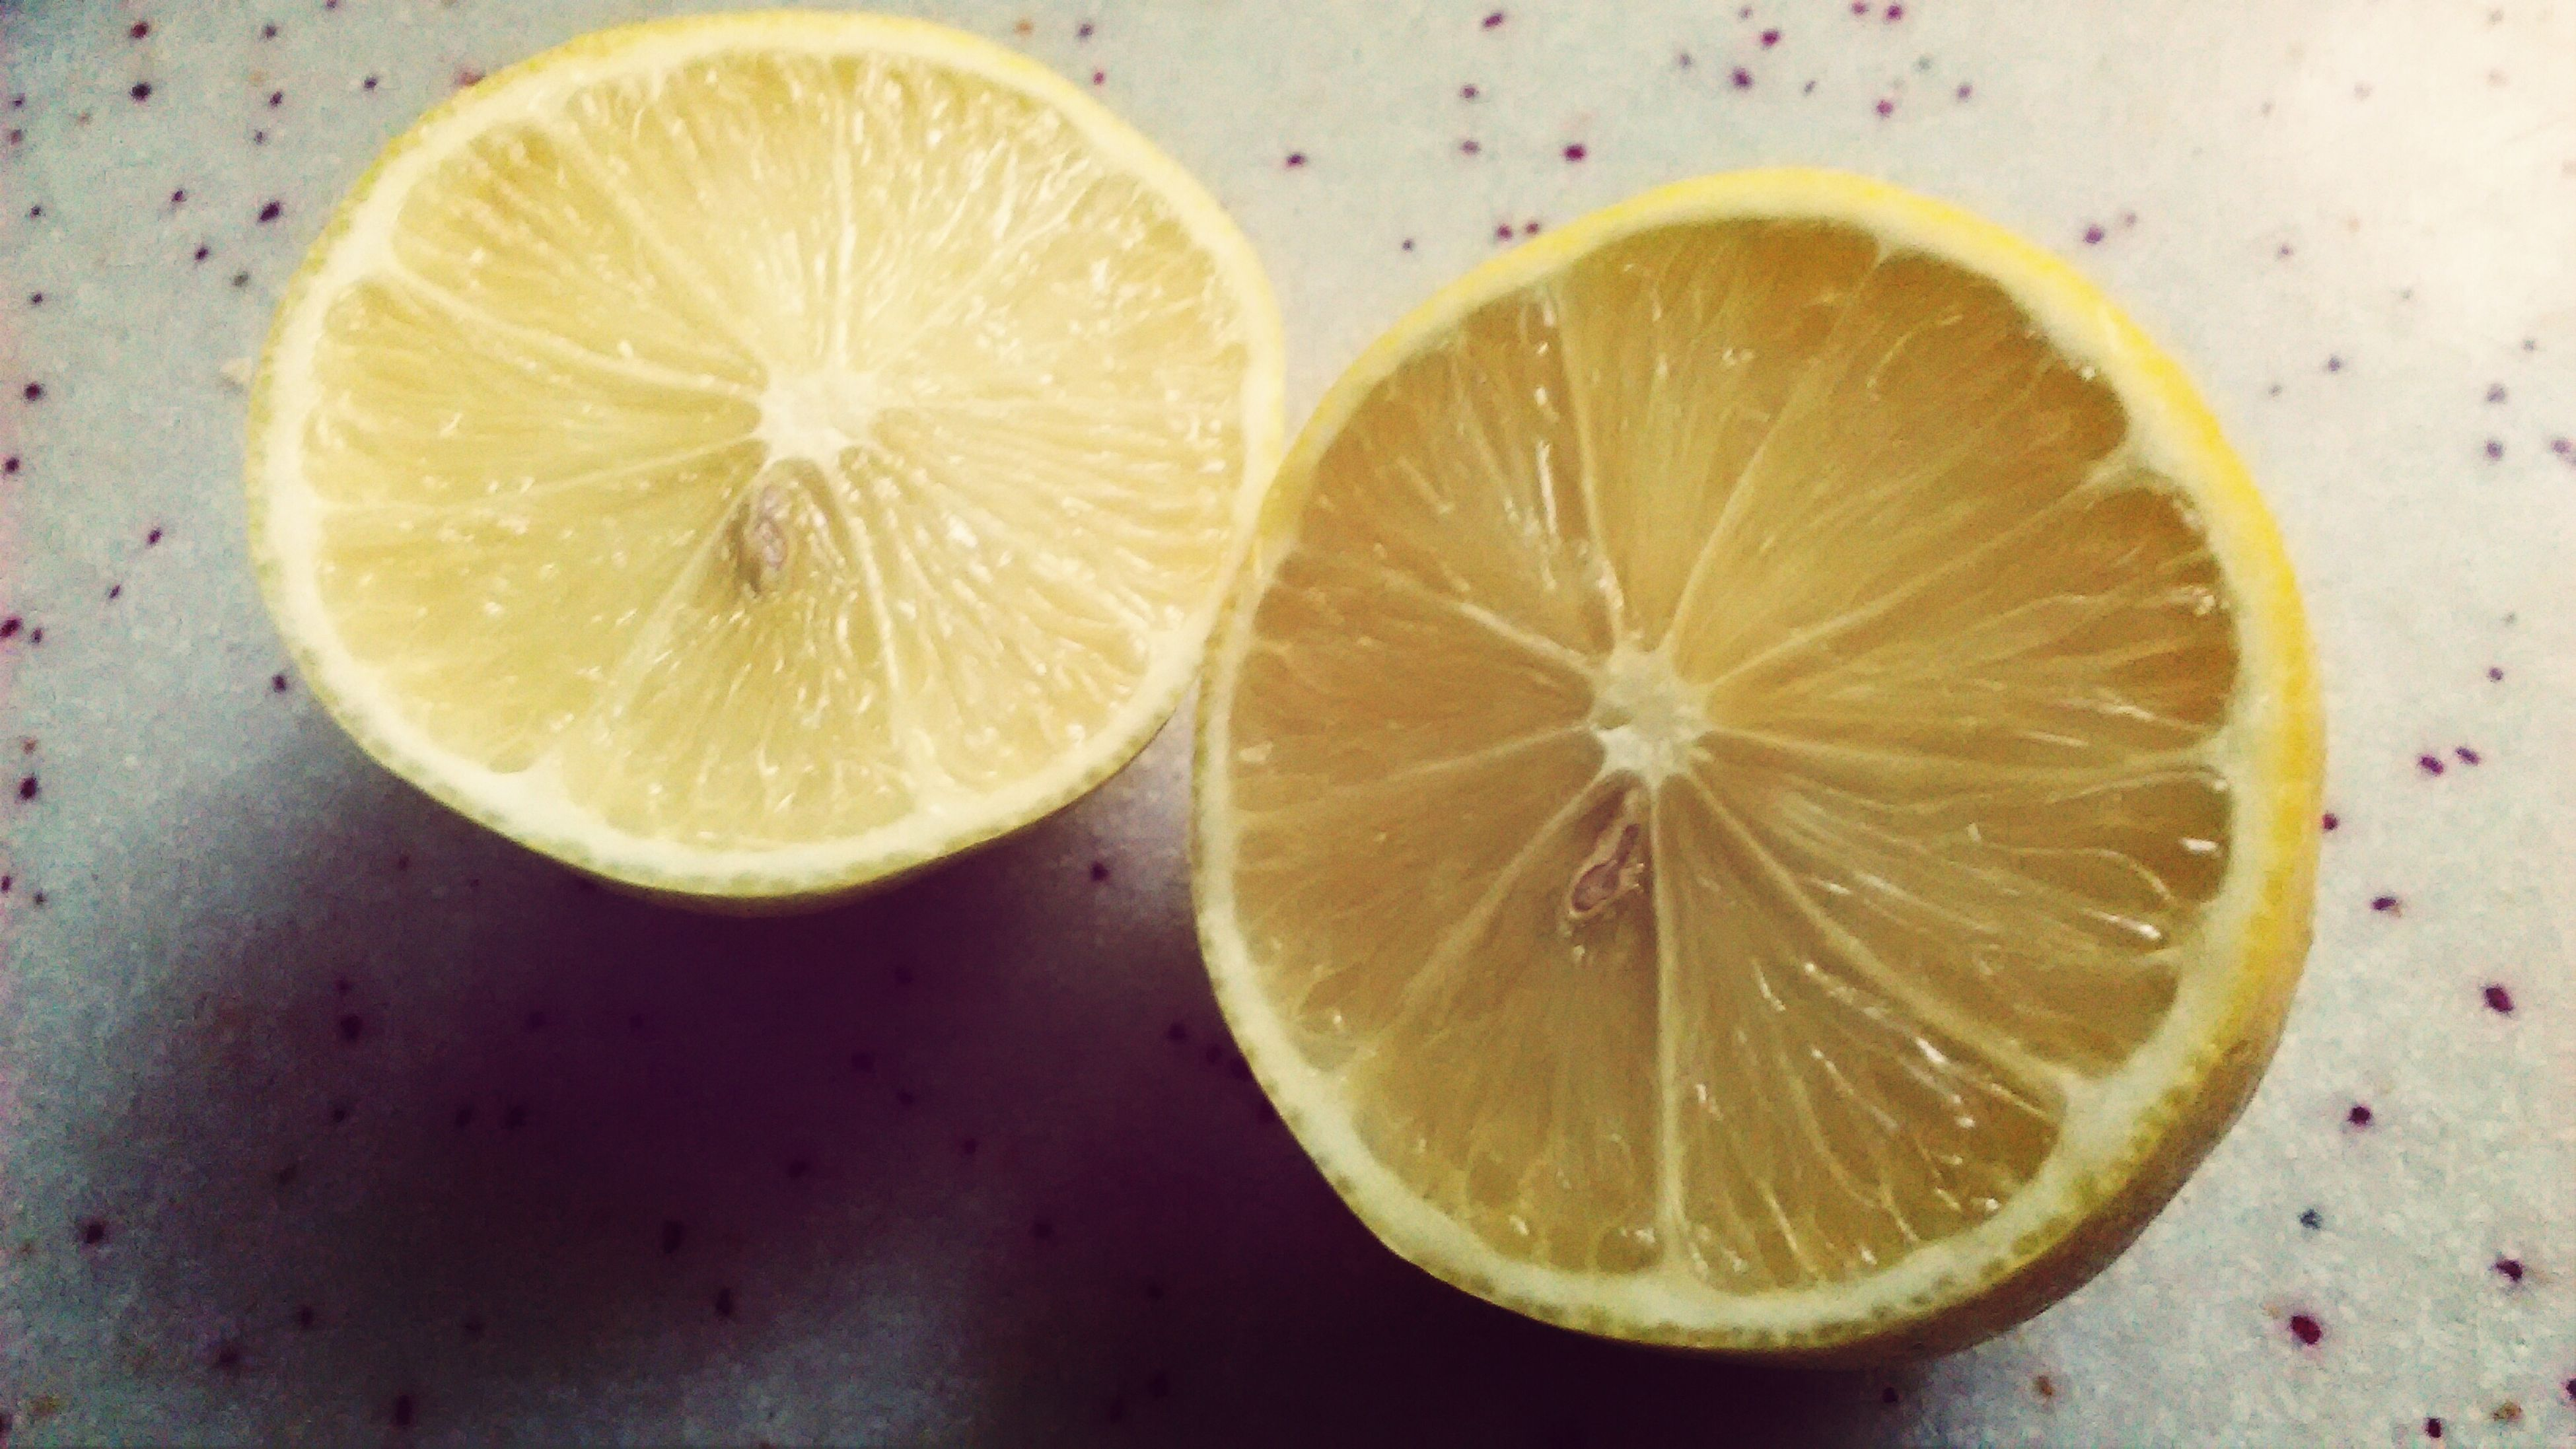 food and drink, freshness, healthy eating, food, fruit, cross section, slice, still life, close-up, indoors, halved, table, citrus fruit, directly above, orange - fruit, lemon, seed, refreshment, high angle view, no people